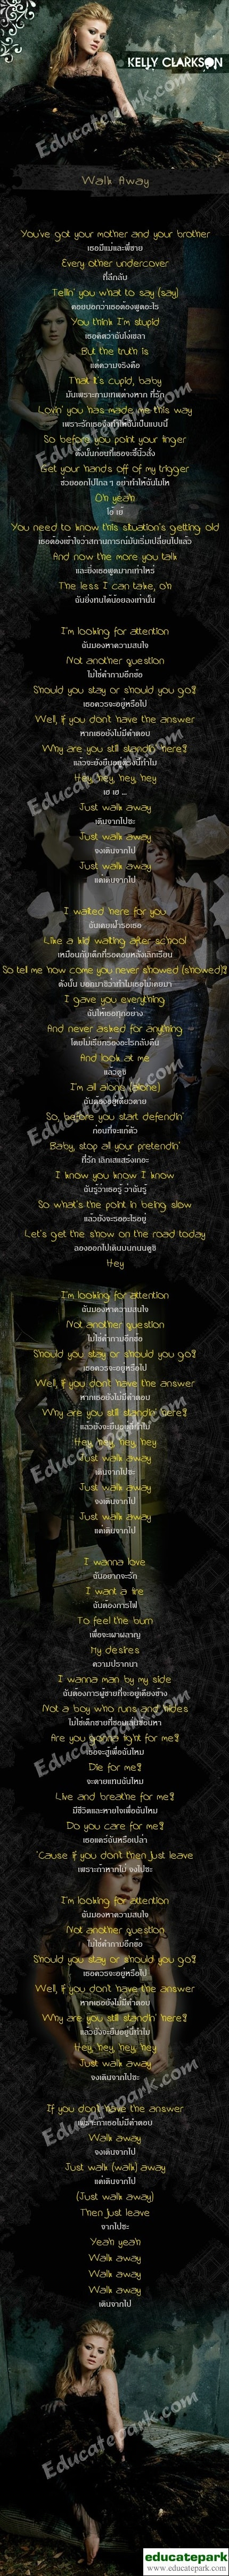 แปลเพลง Walk Away - Kelly Clarkson